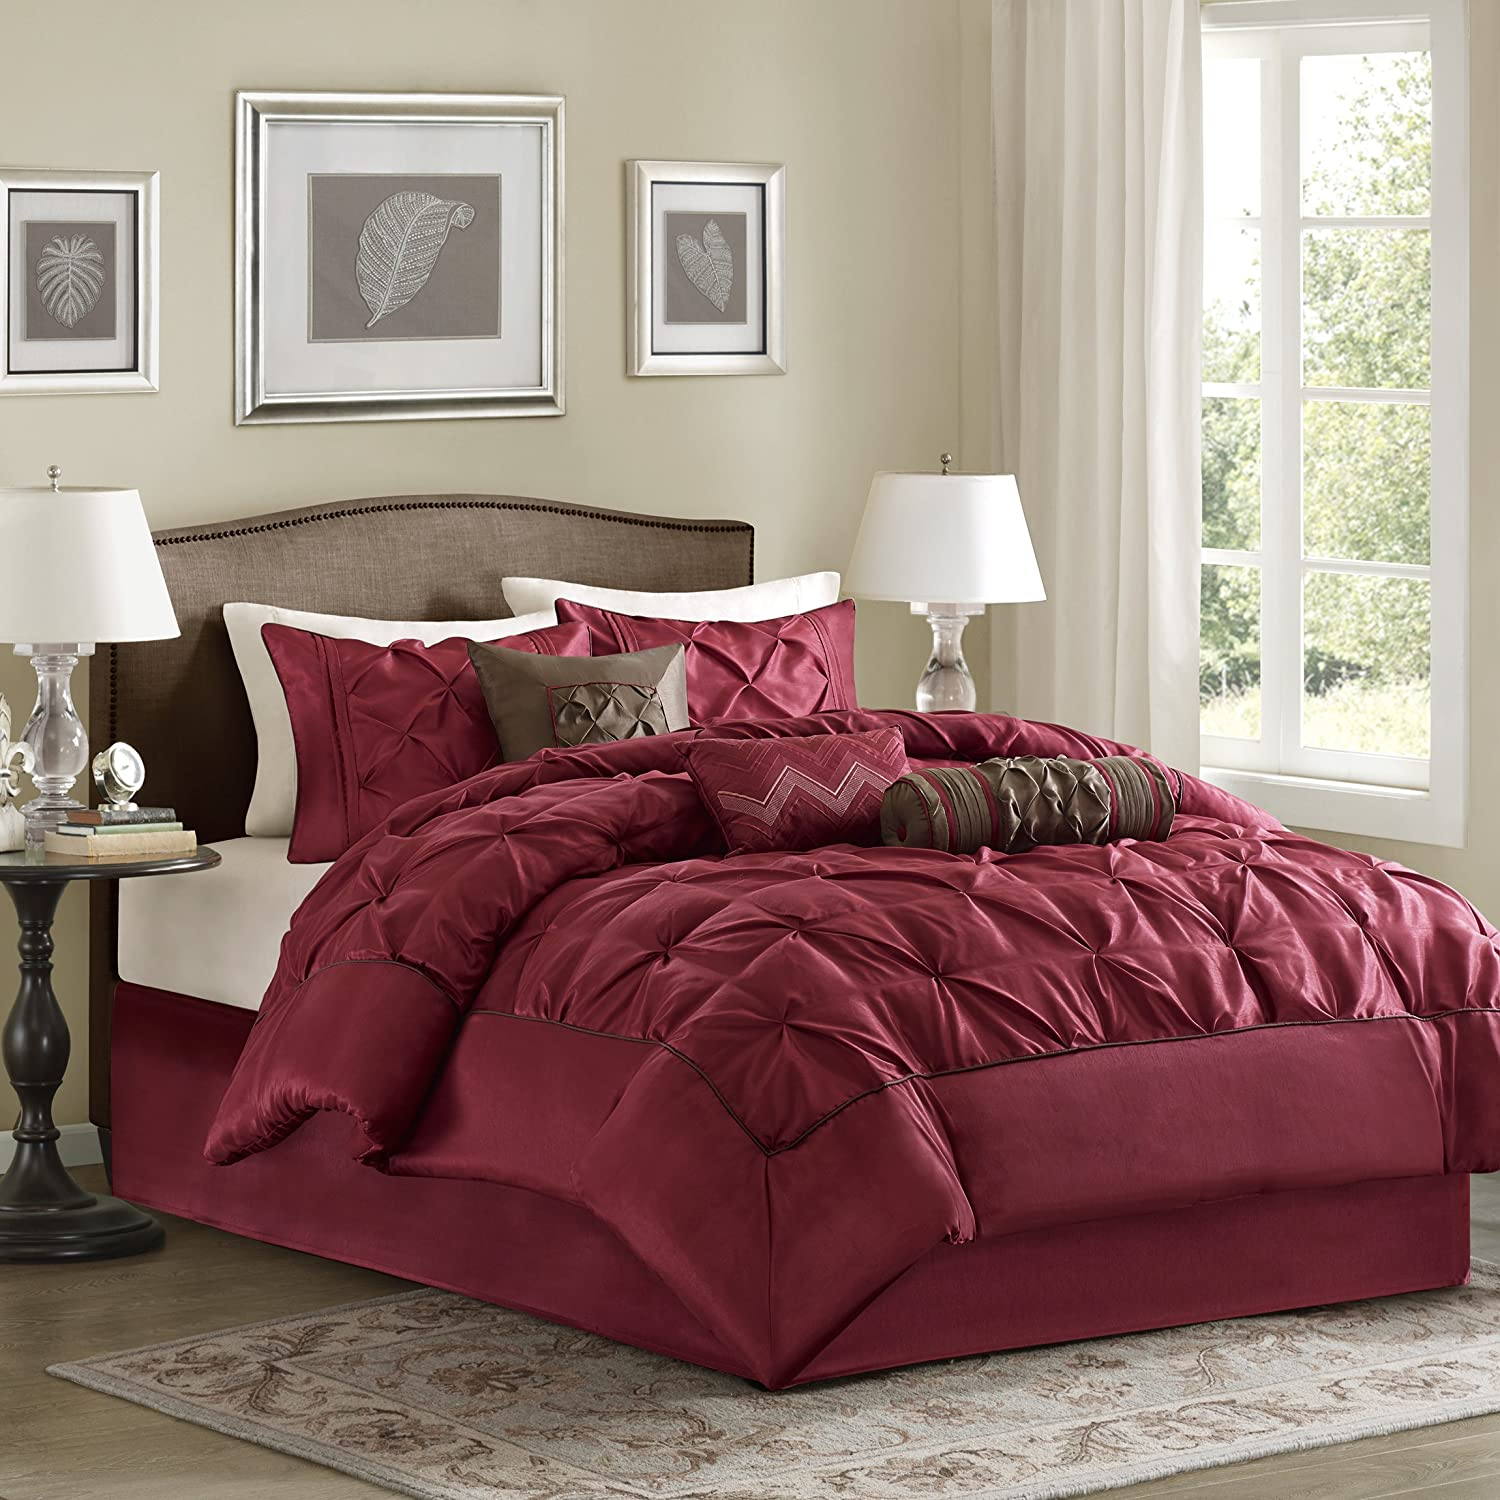 tufted clean comforter how set to smart